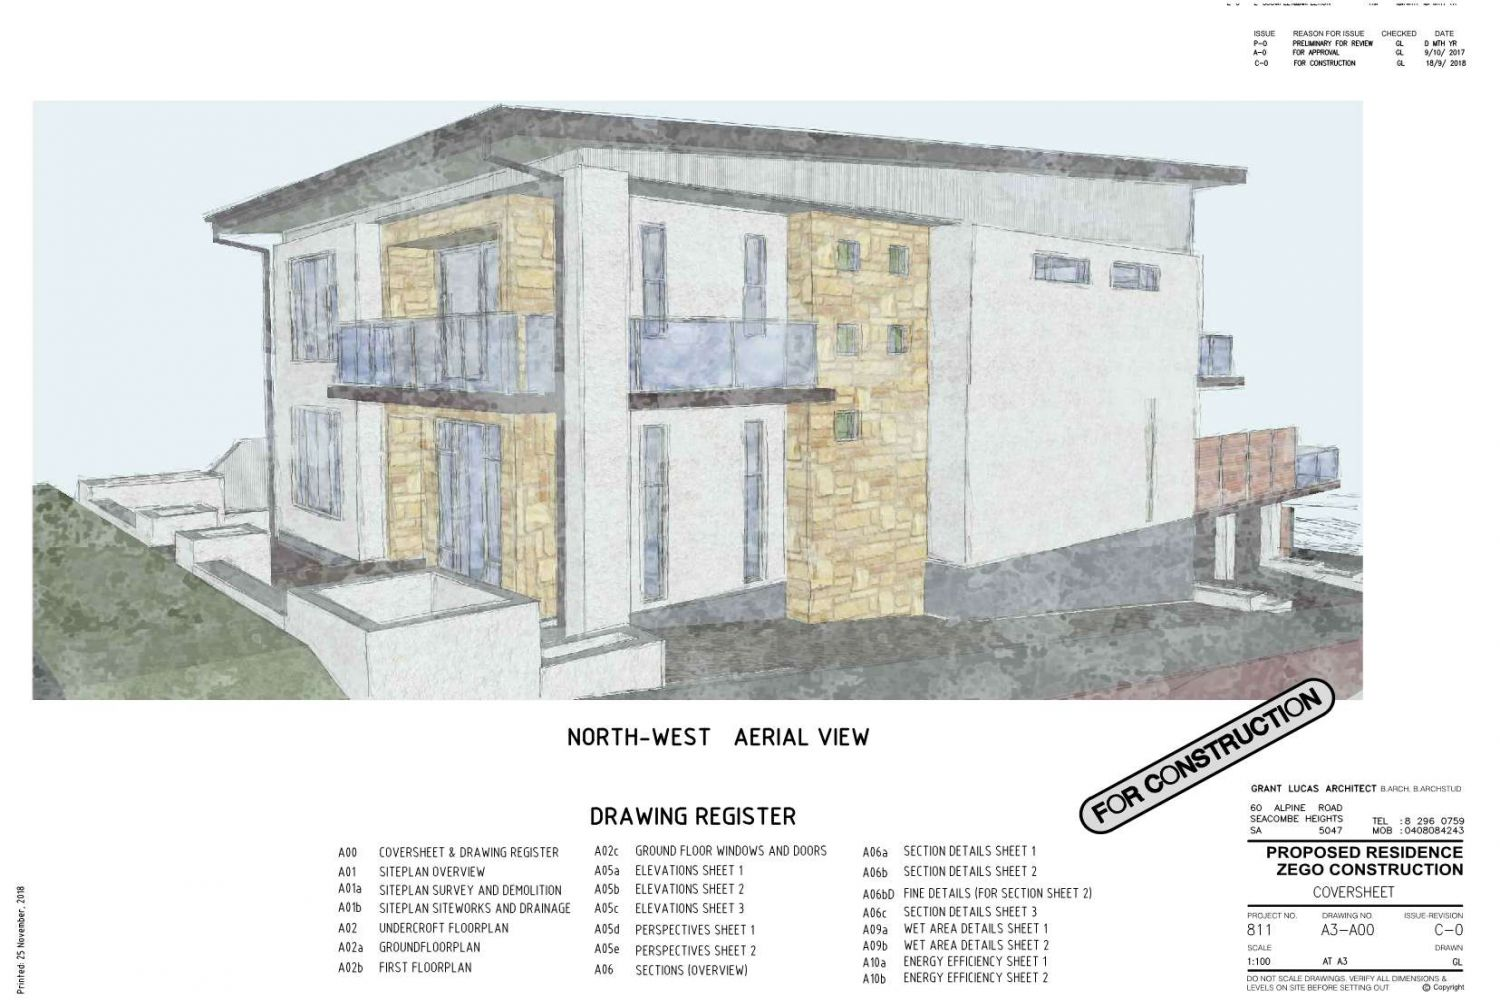 Owner Builder 2 storey Home at Port Noarlunga: Working Drawings Sheet 1: Perspective and Drawing Register